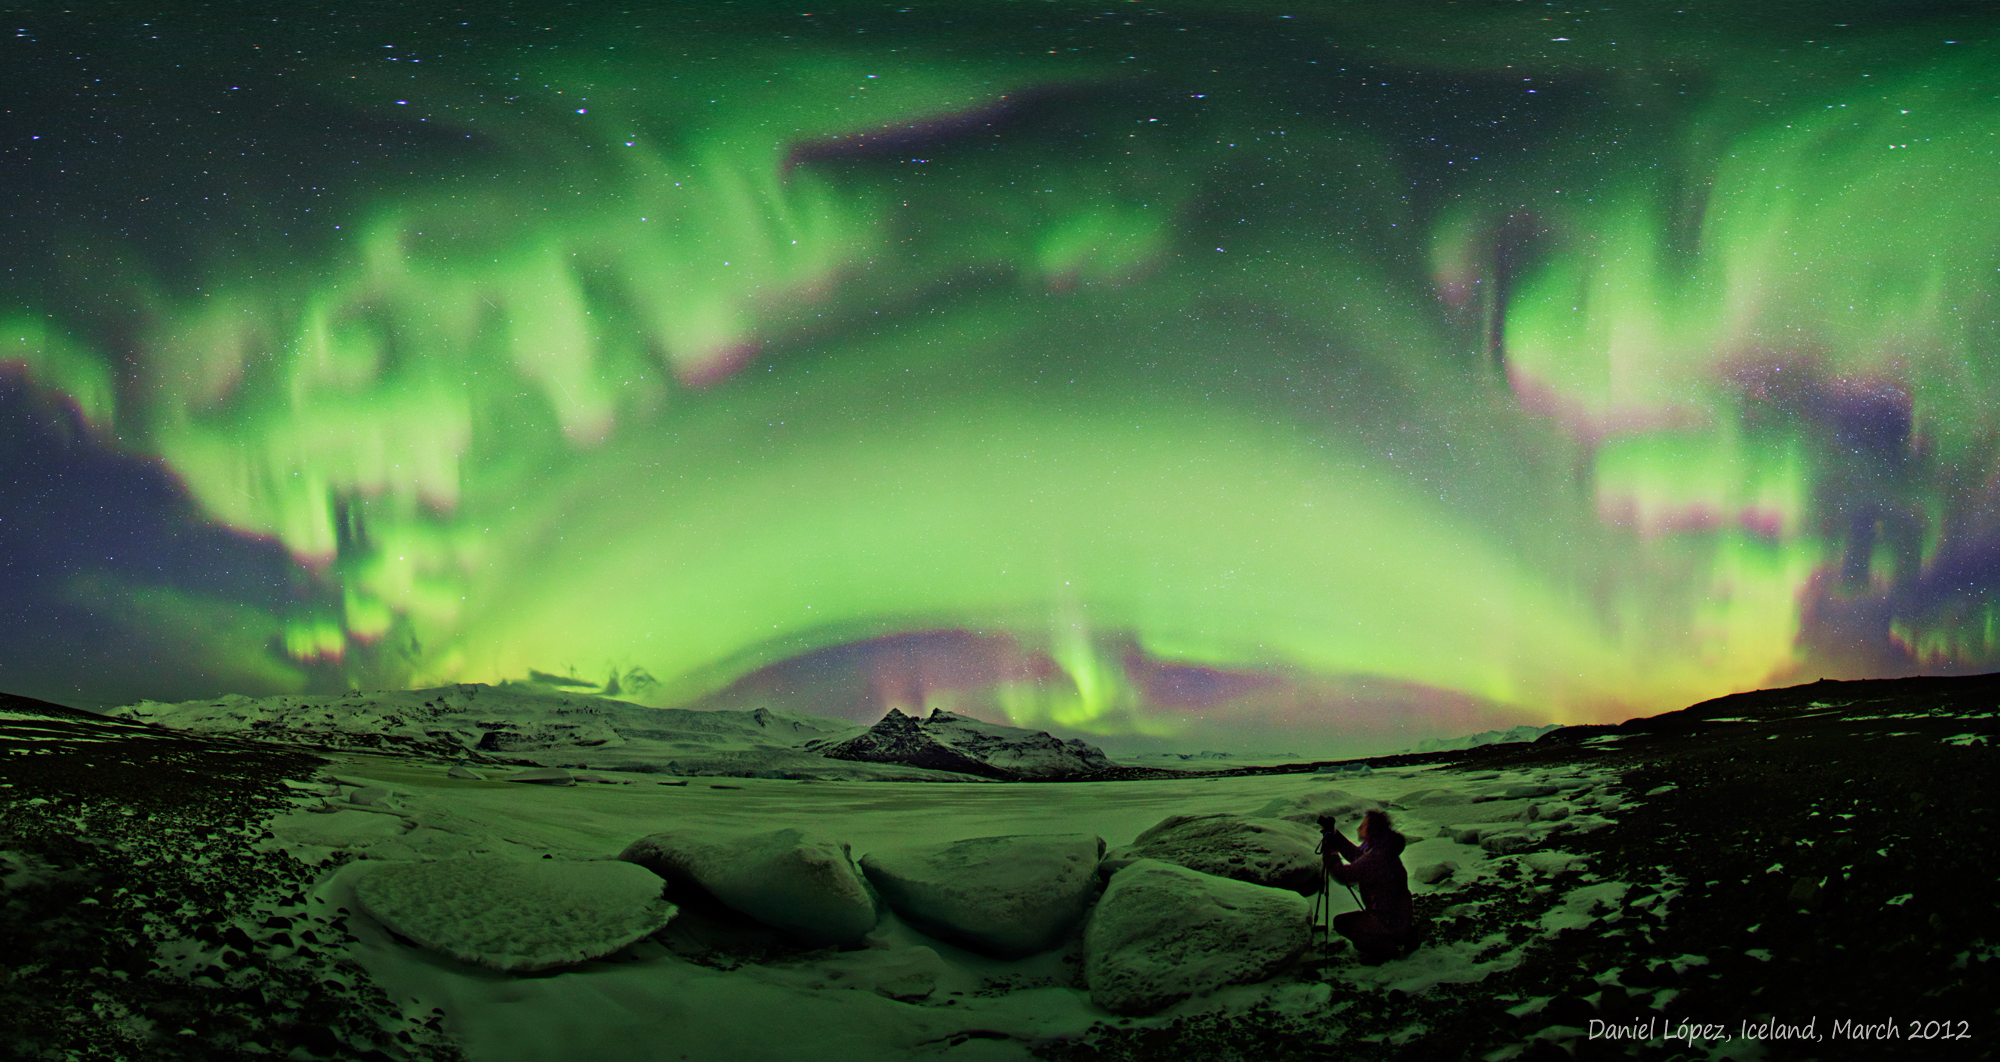 APOD: 2012 March 21 - Aurora Over Iceland